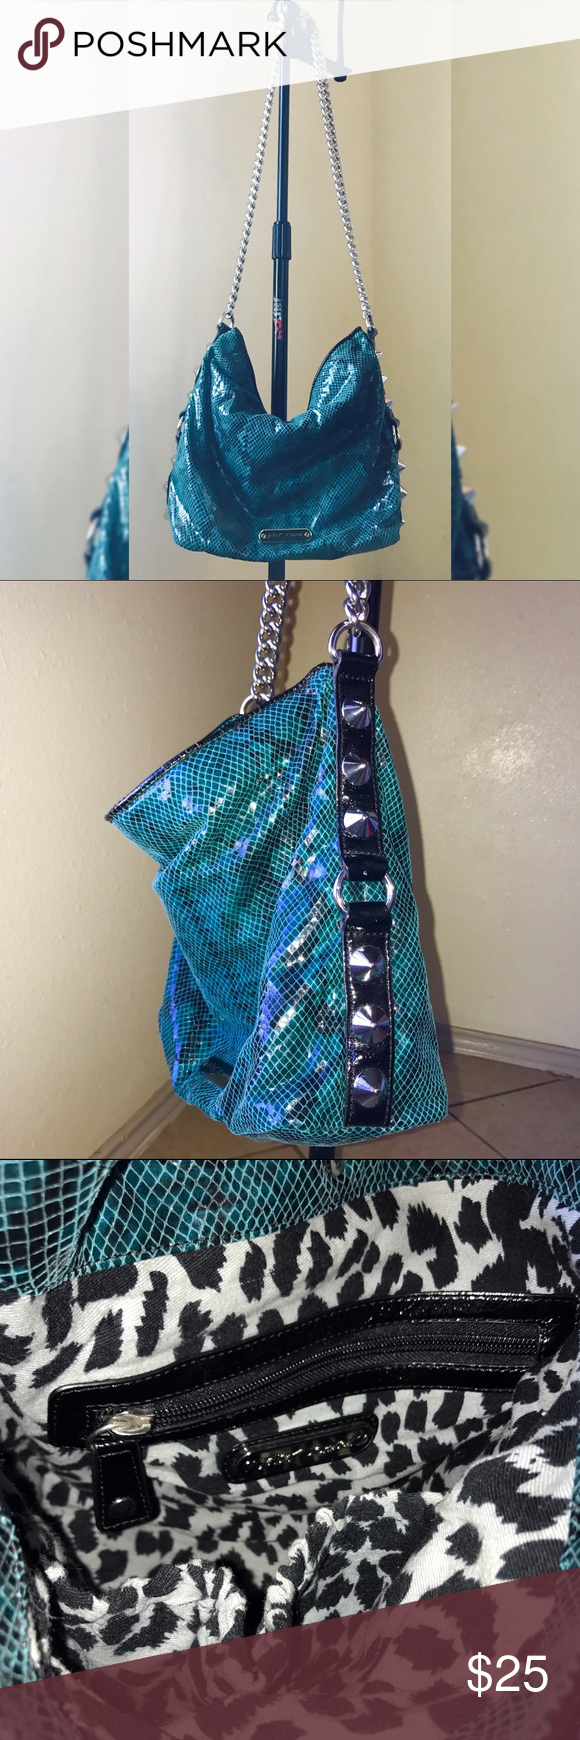 Authentic Betsey Johnson metallic snakeskin Purse Chain link, green metallic studded, snakeskin purse. Cheetah print inside lining. Like new conditions. 70%Polyester 30%Nylon 100%Cotton Betsey Johnson Bags Shoulder Bags